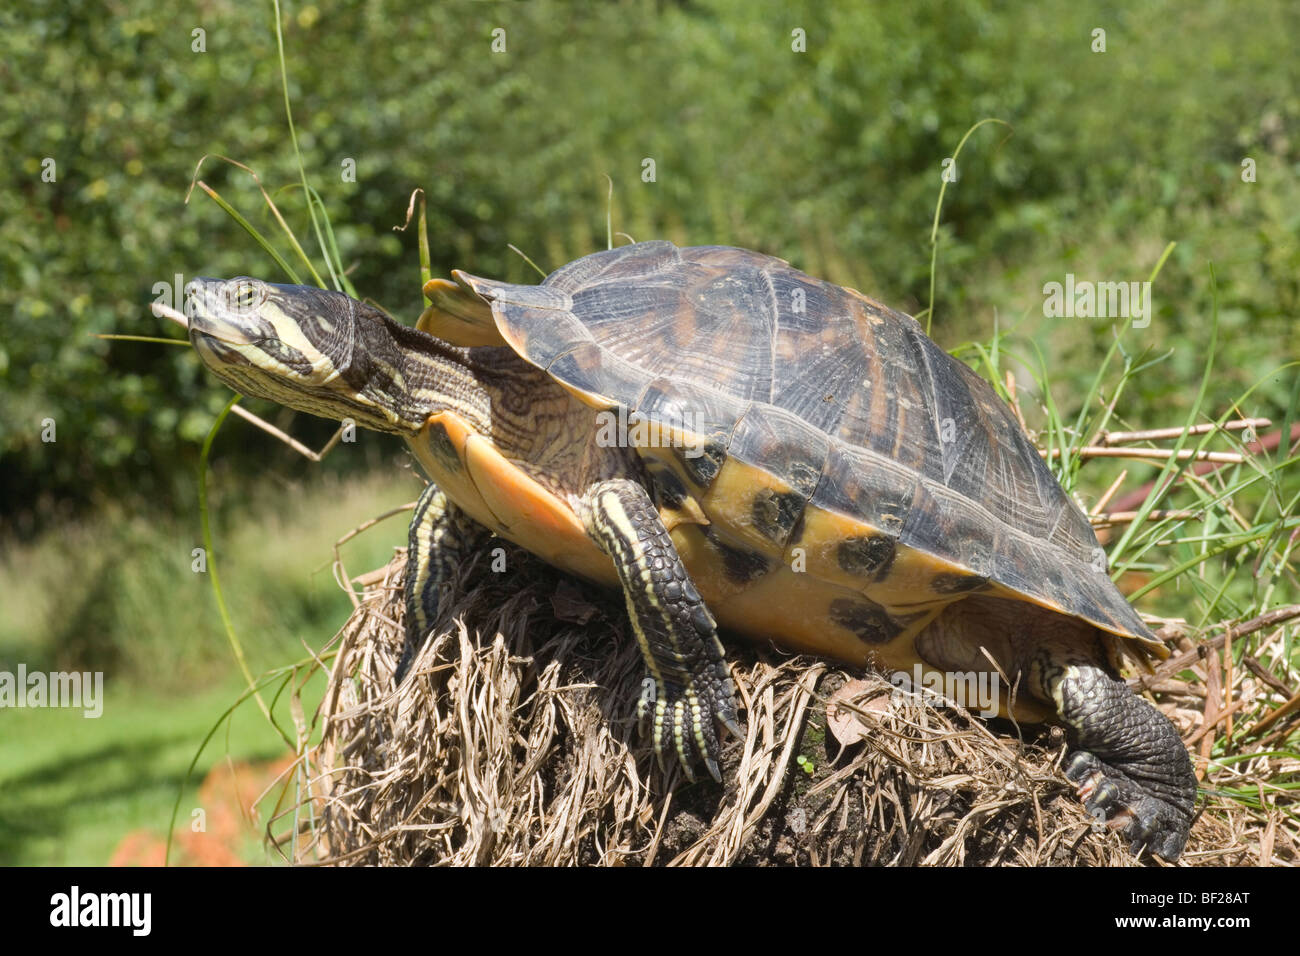 North american yellow bellied turtle trachemys scripta for Trachemys scripta